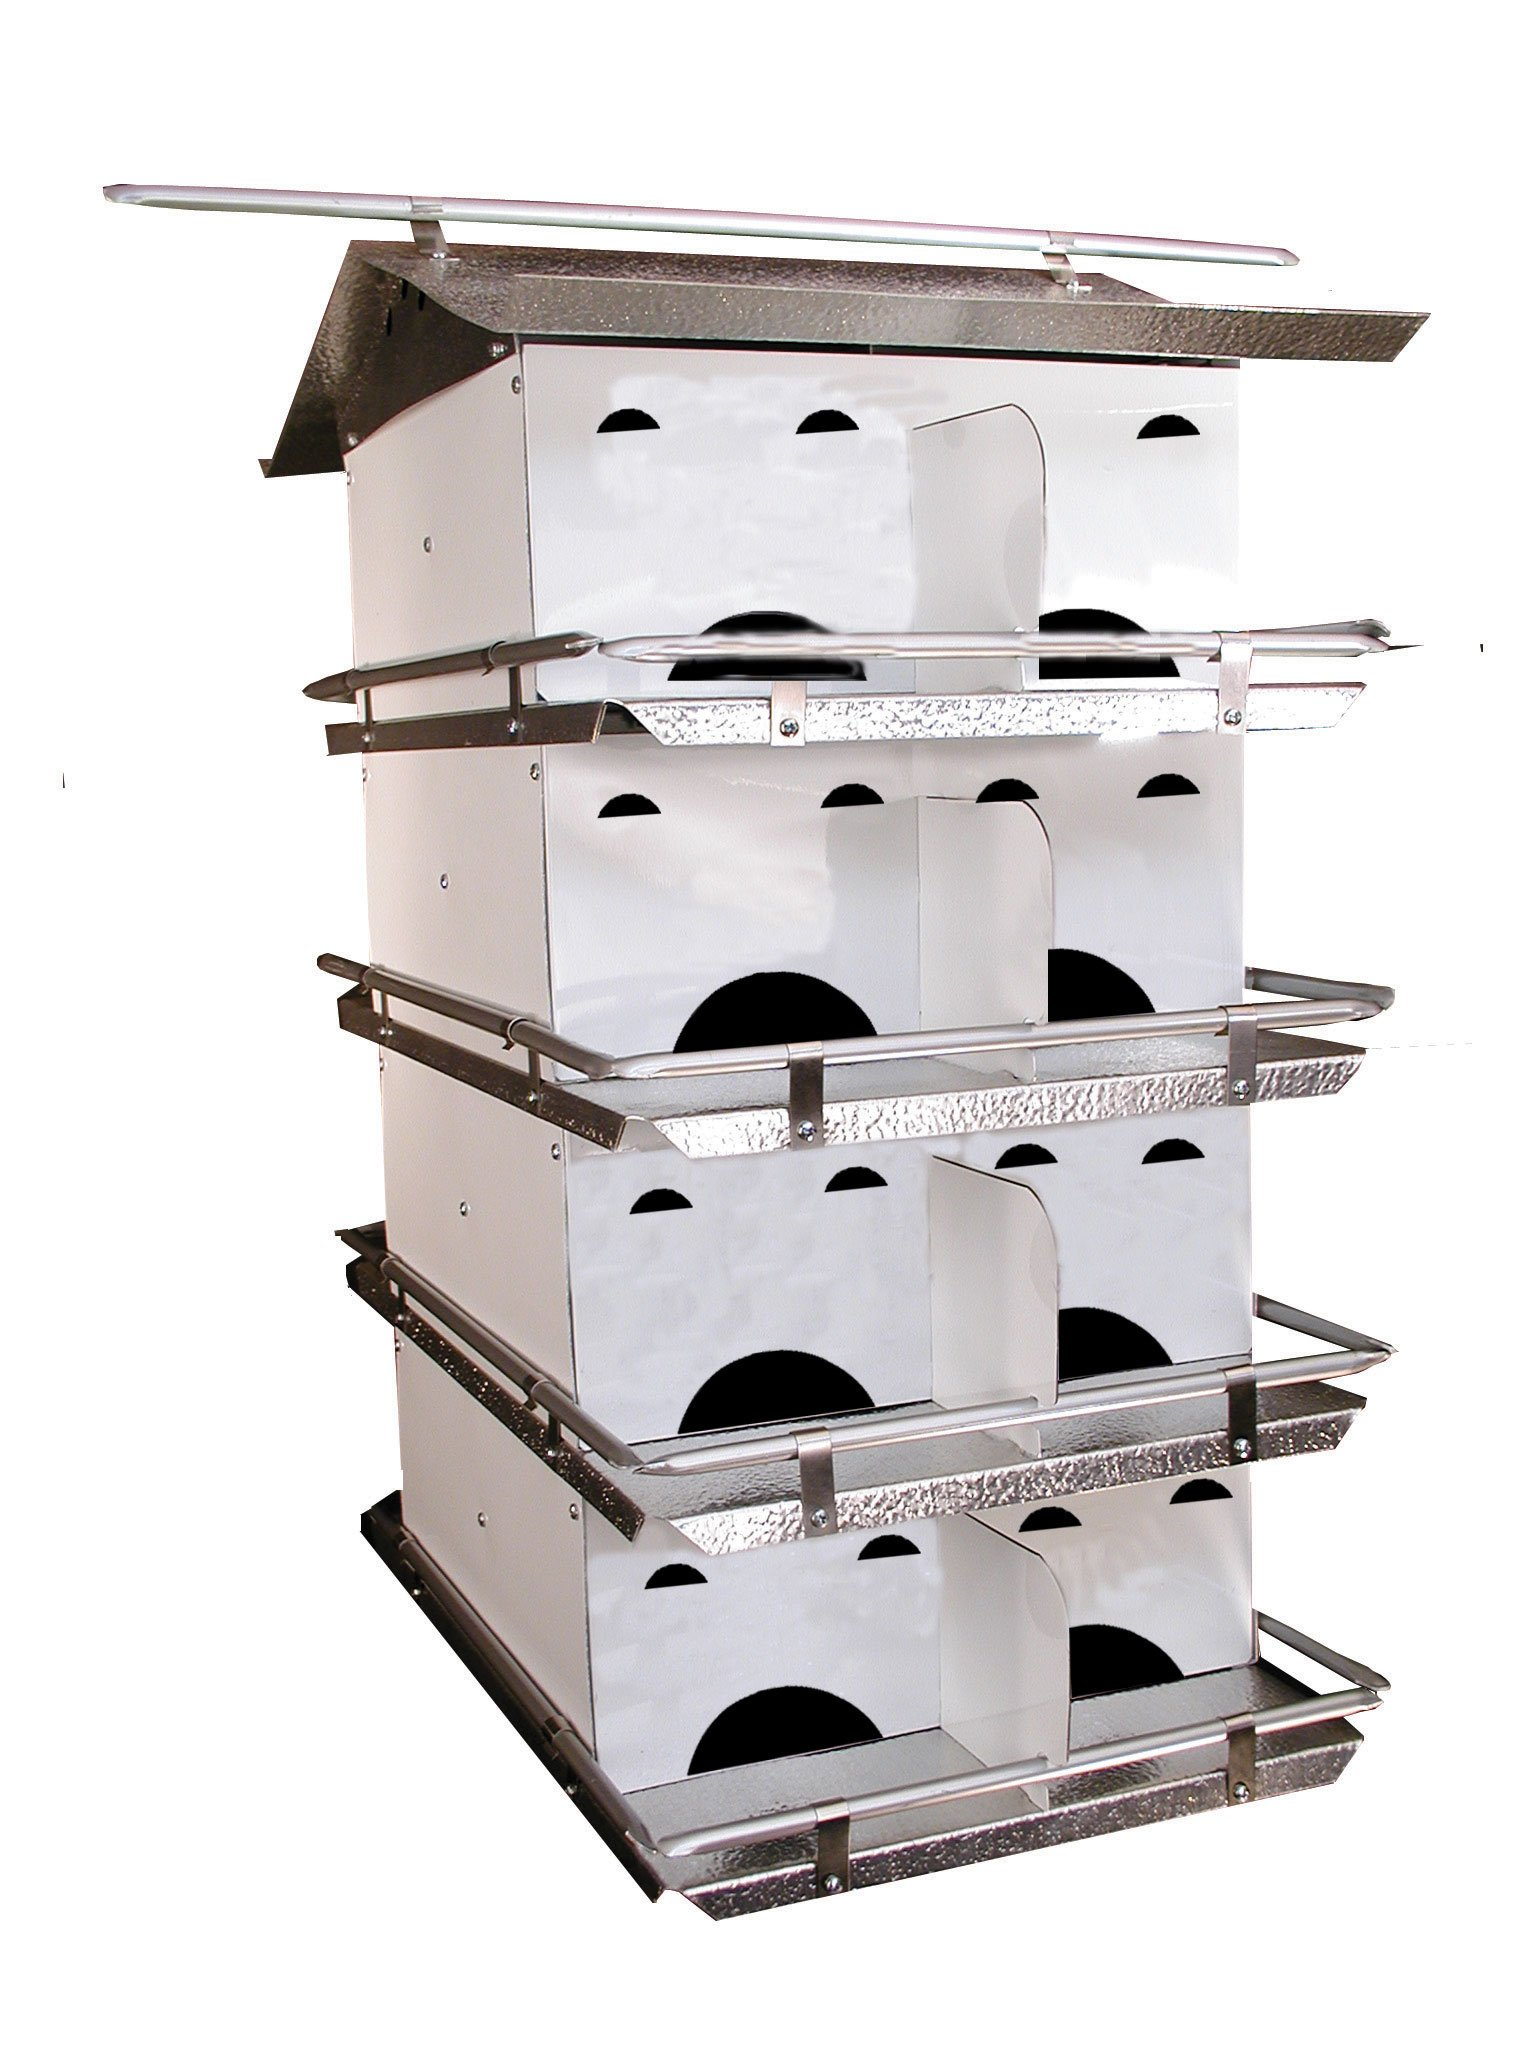 Birds Choice 4-Floor-16 Room Purple Martin House with Starling Resistent Holes